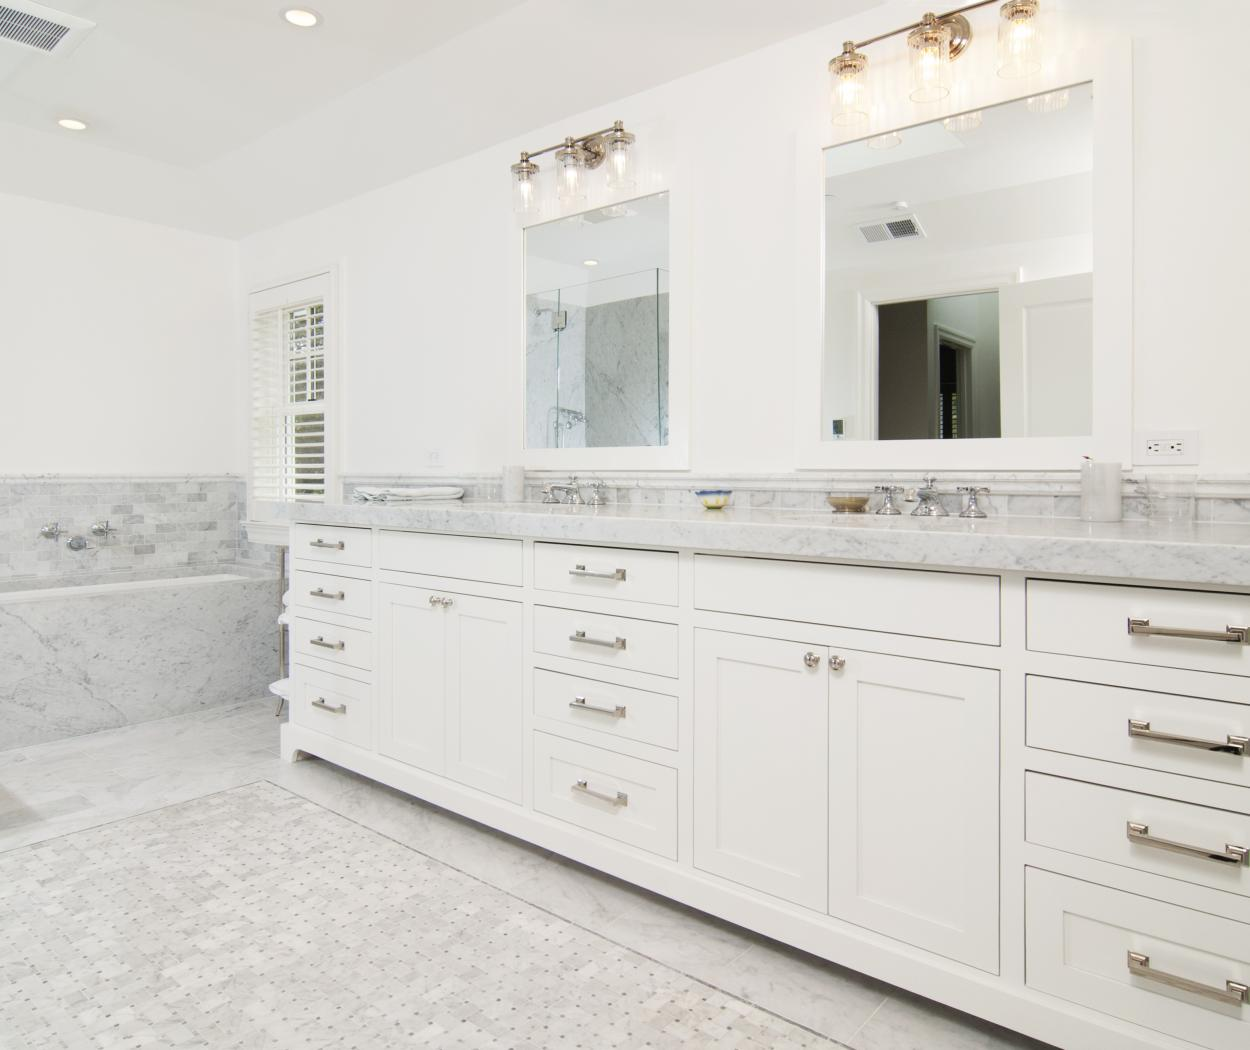 White Transitional, Shaker Style Master Bathroom with Marble Countertops, Double Sinks and Chrome Hardware